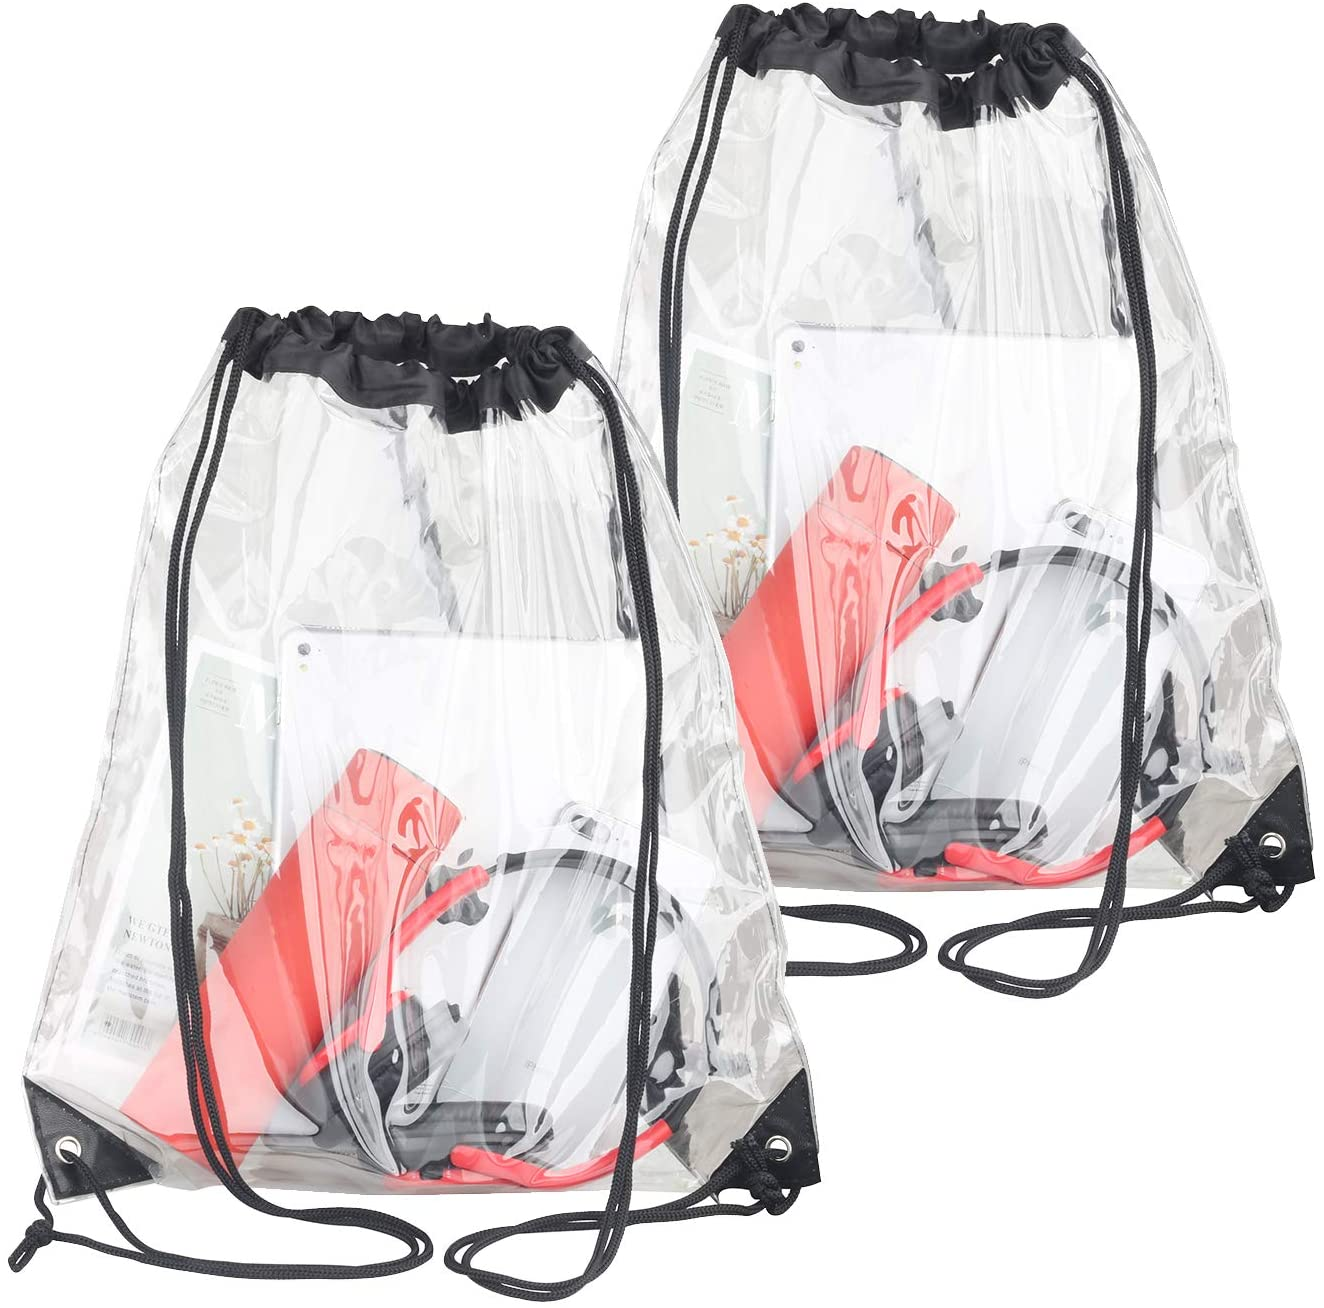 2 Pieces Clear Drawstring Bags, Waterproof Small Clear Bag for Stadium Colleges Sport Event Work Concert Security Approved